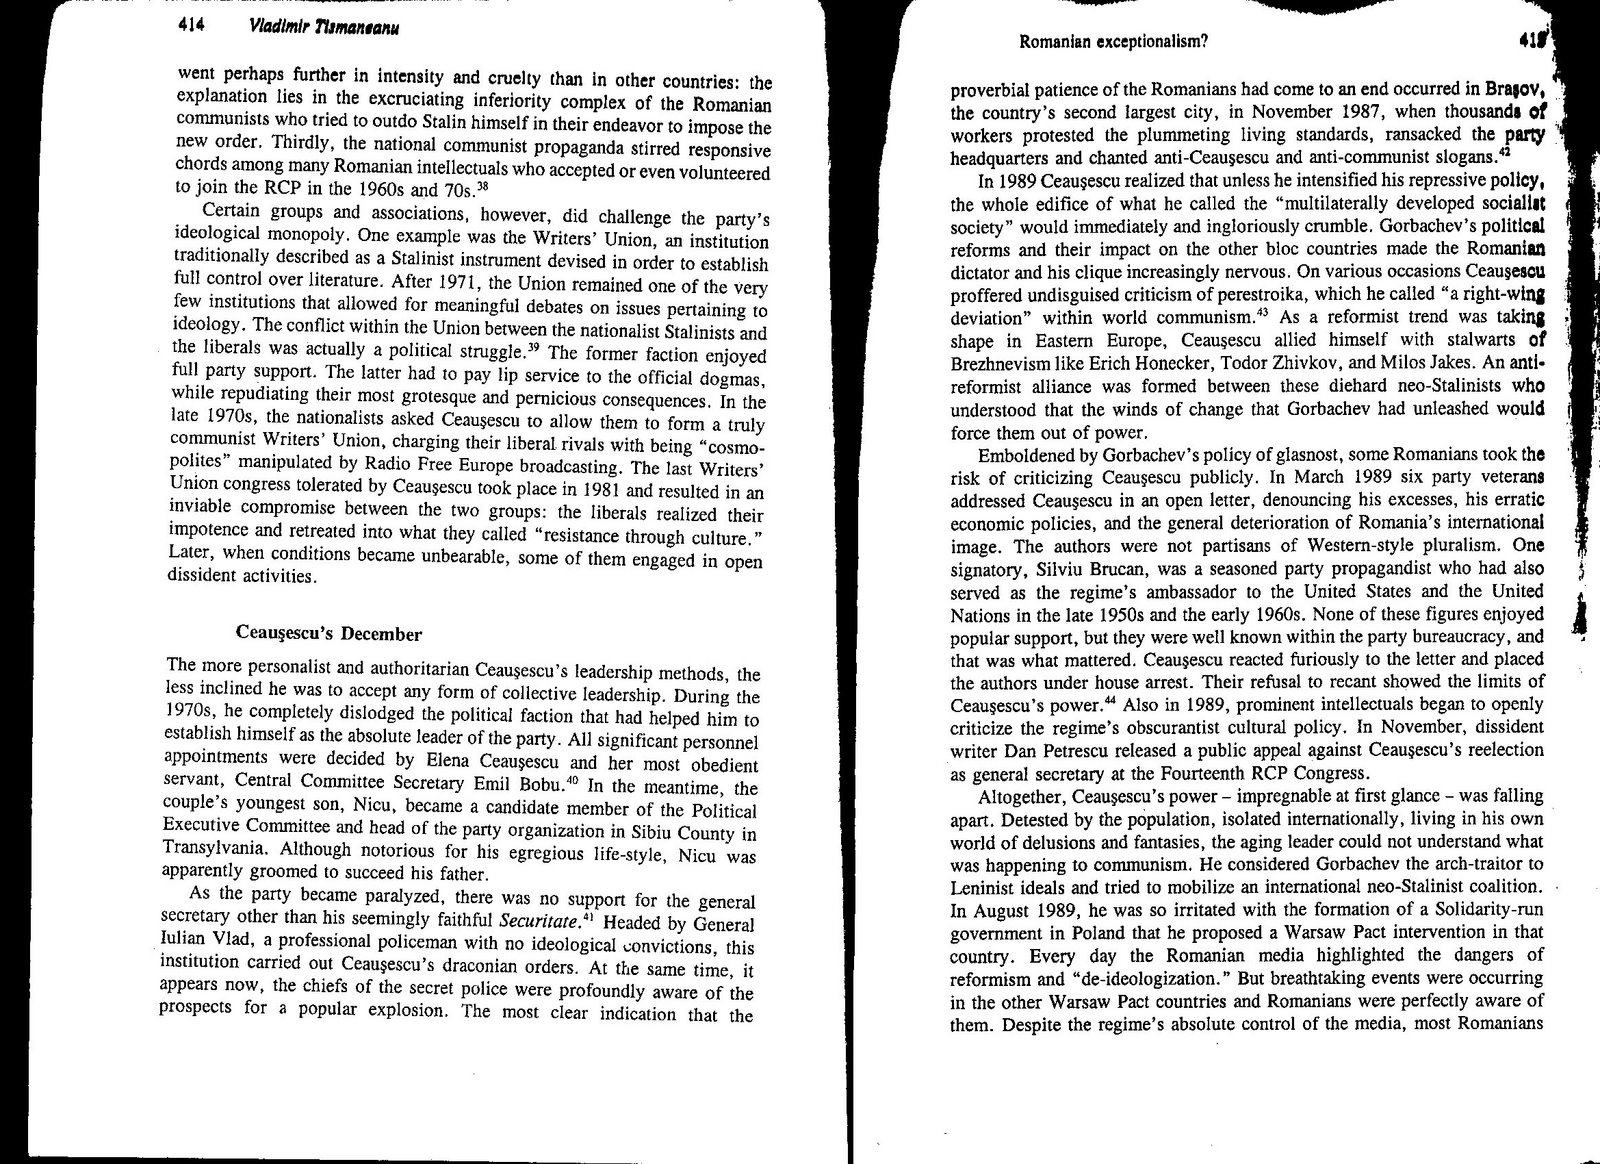 005 Image4 Essay Example Fearsome 3 Page On Gun Control Double Spaced Word Count Full